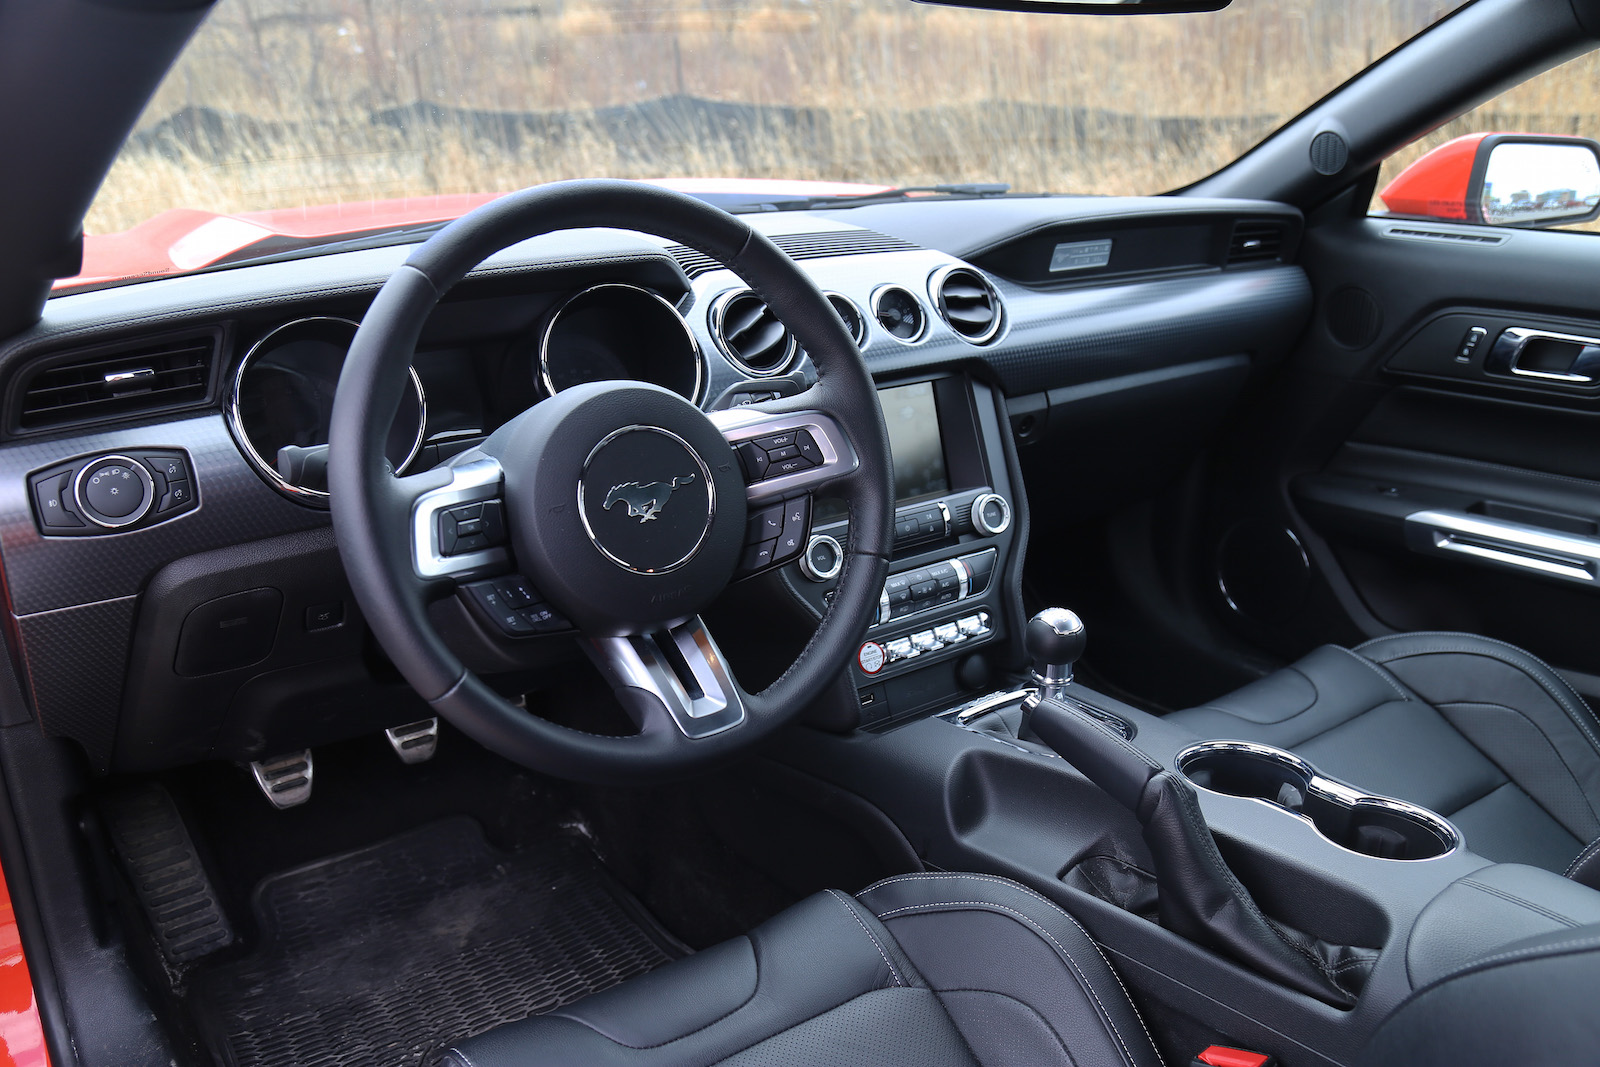 2015 ford mustang gt black leather interior